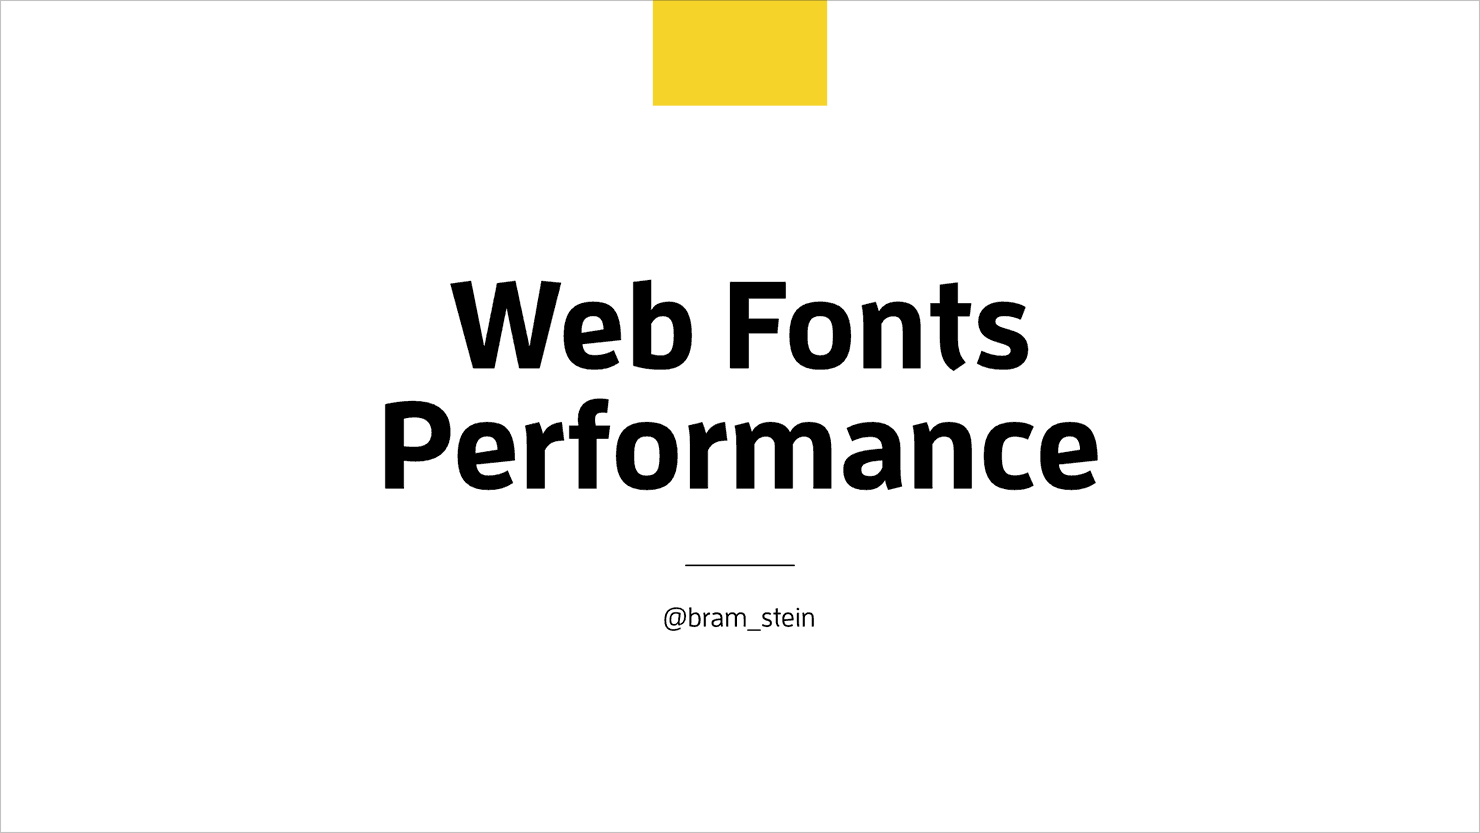 Web Fonts Performance opening slide